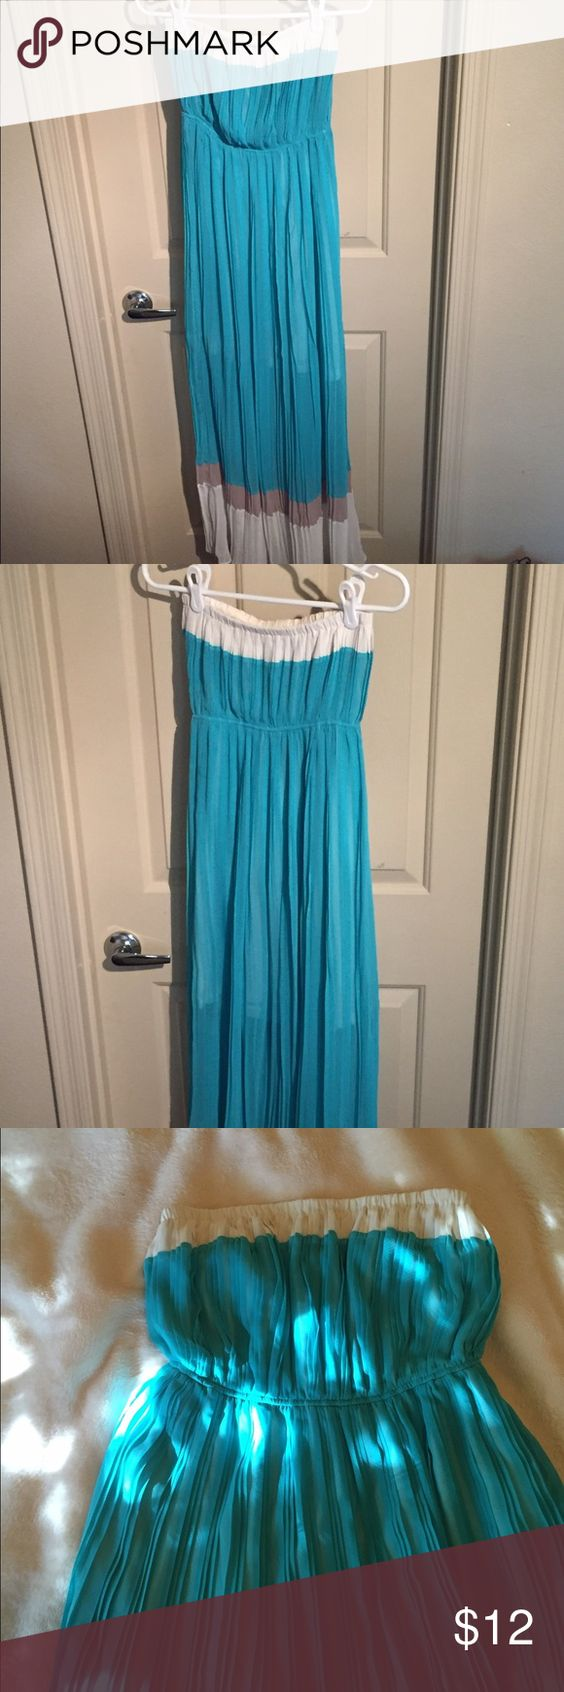 Strapless Maxi Dress Teal and Cream strapless block maxi dress. Made of chiffon and has a liner on the inside. Size is small. Dresses Maxi